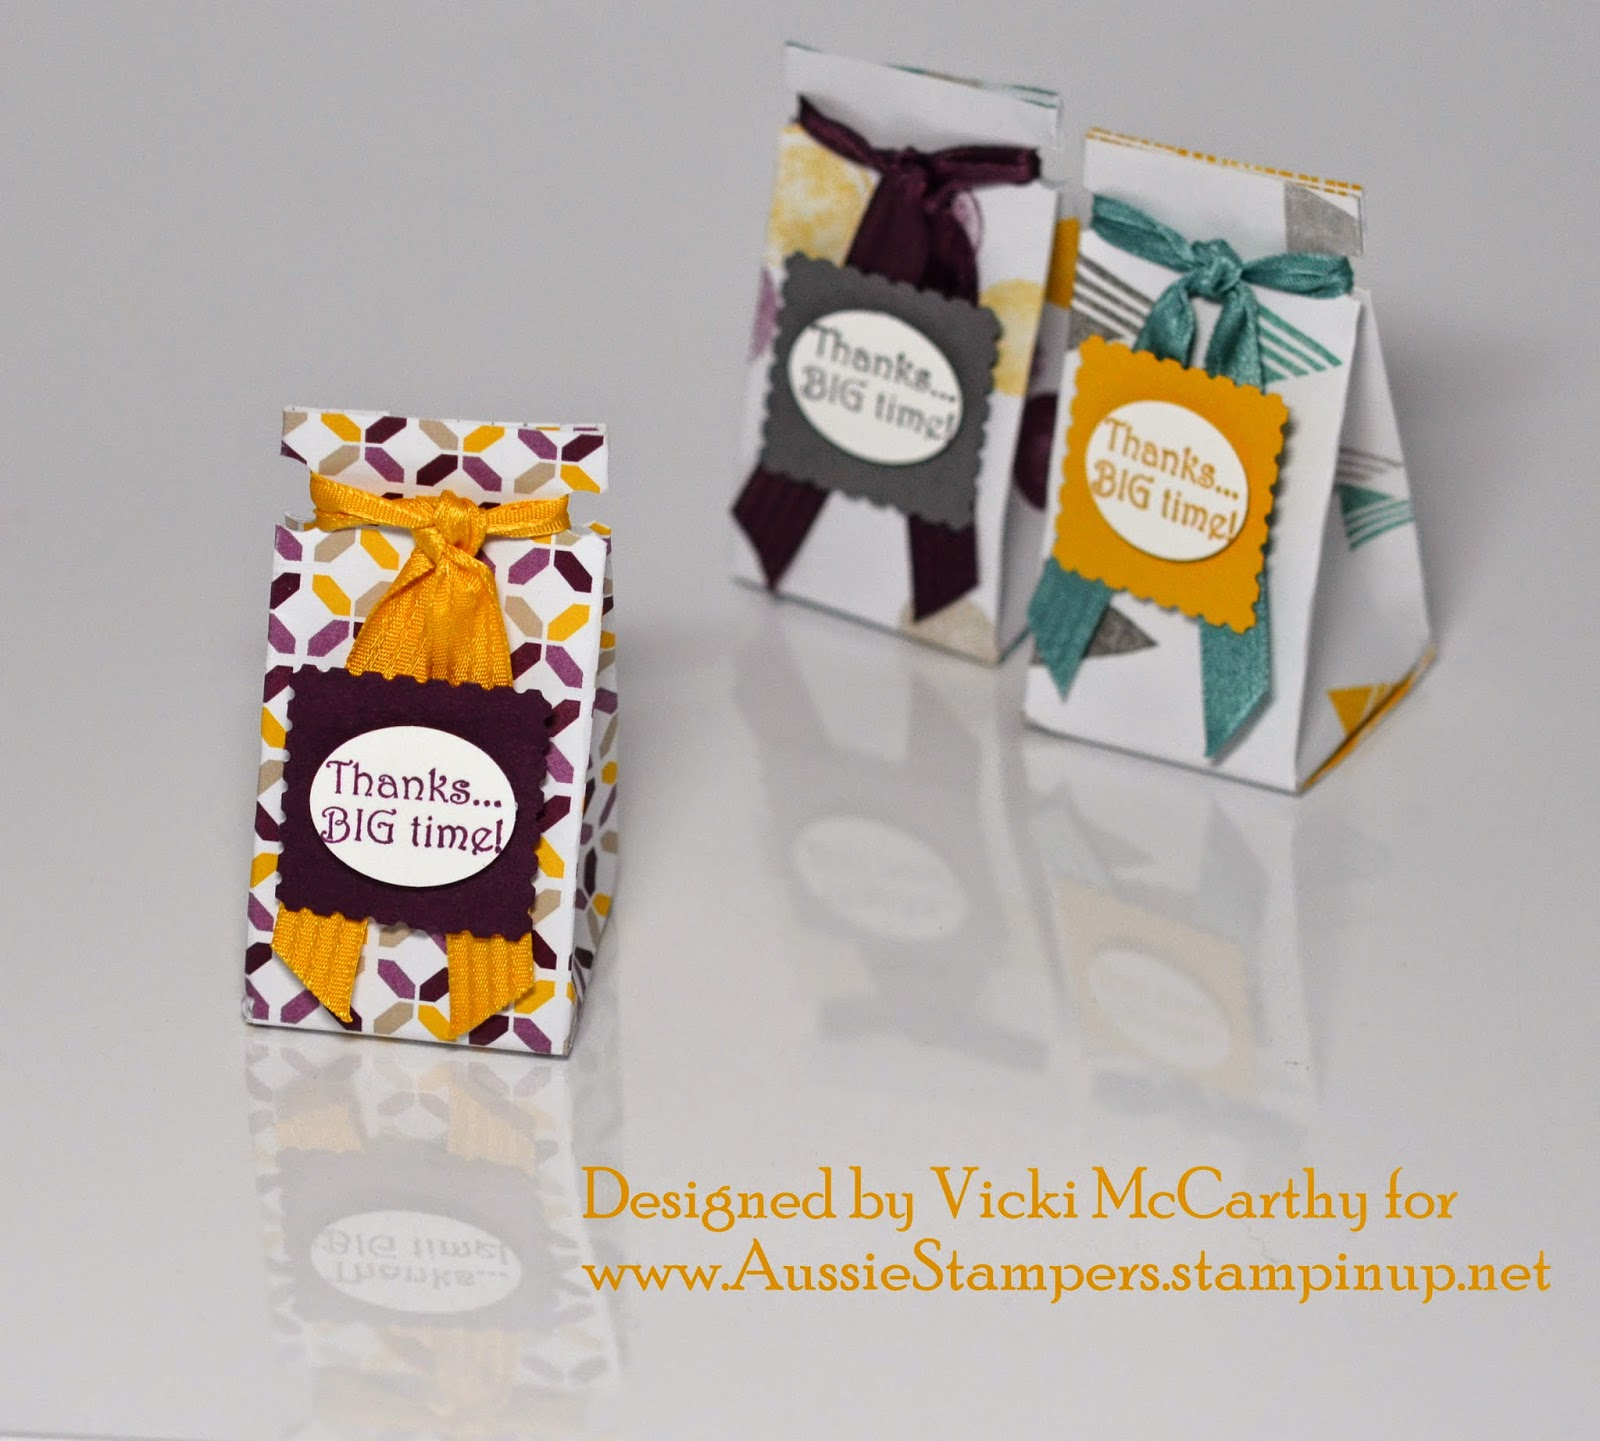 Australian Online Catalogues Aussie Stampers Free Kit For July For My Online